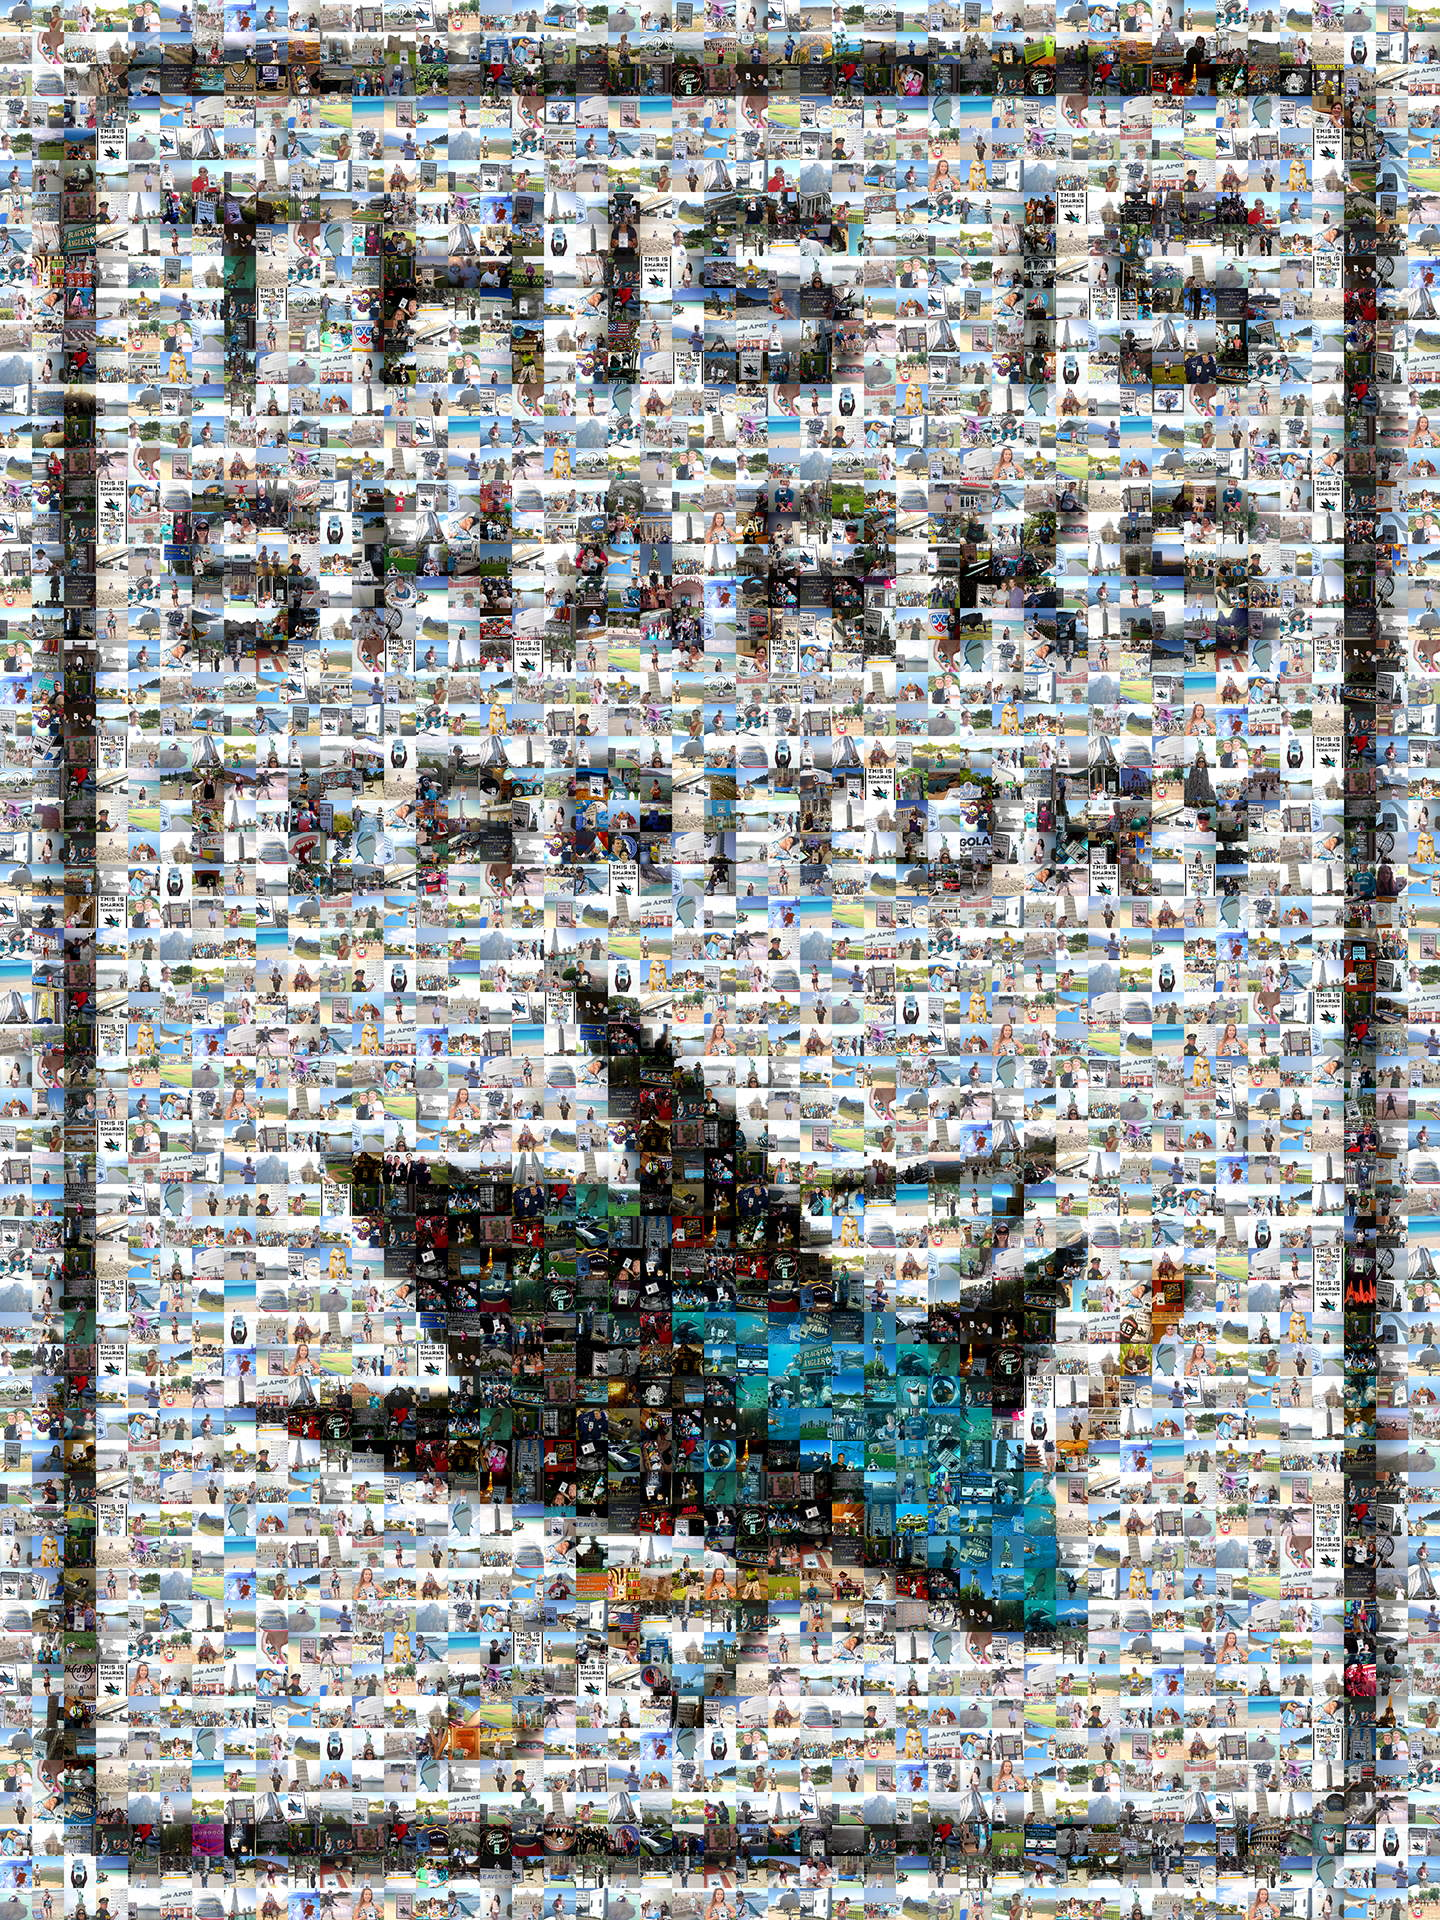 photo mosaic over 650 fan submitted photos make up this San Jose Sharks mosaic